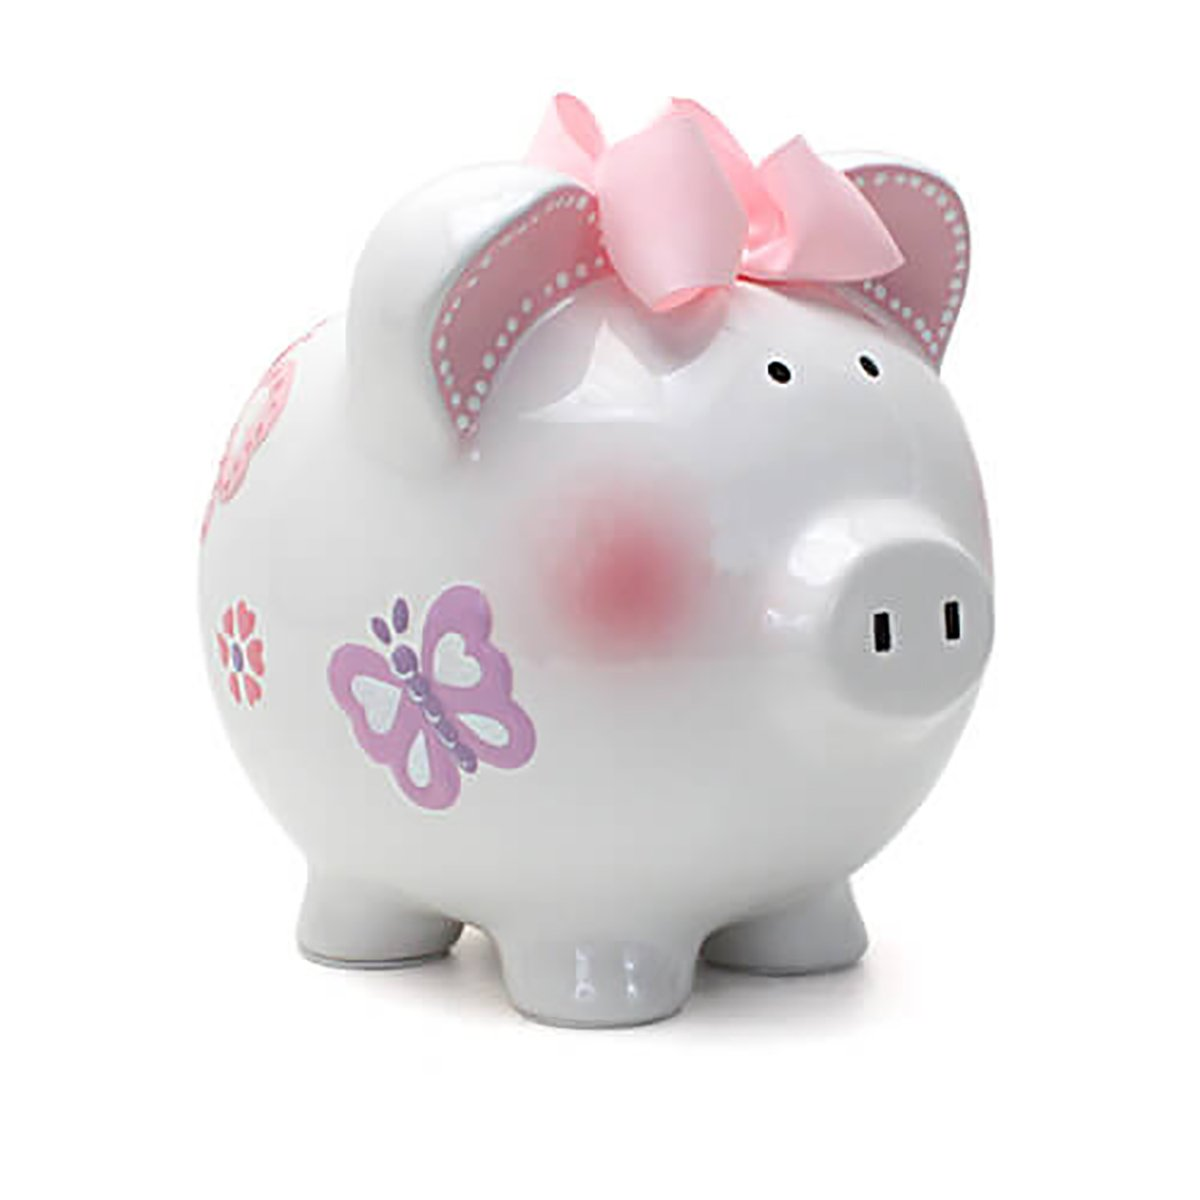 Mud pie ballerina piggy bank mud pie - Child To Cherish Piggy Bank Large Butterfly